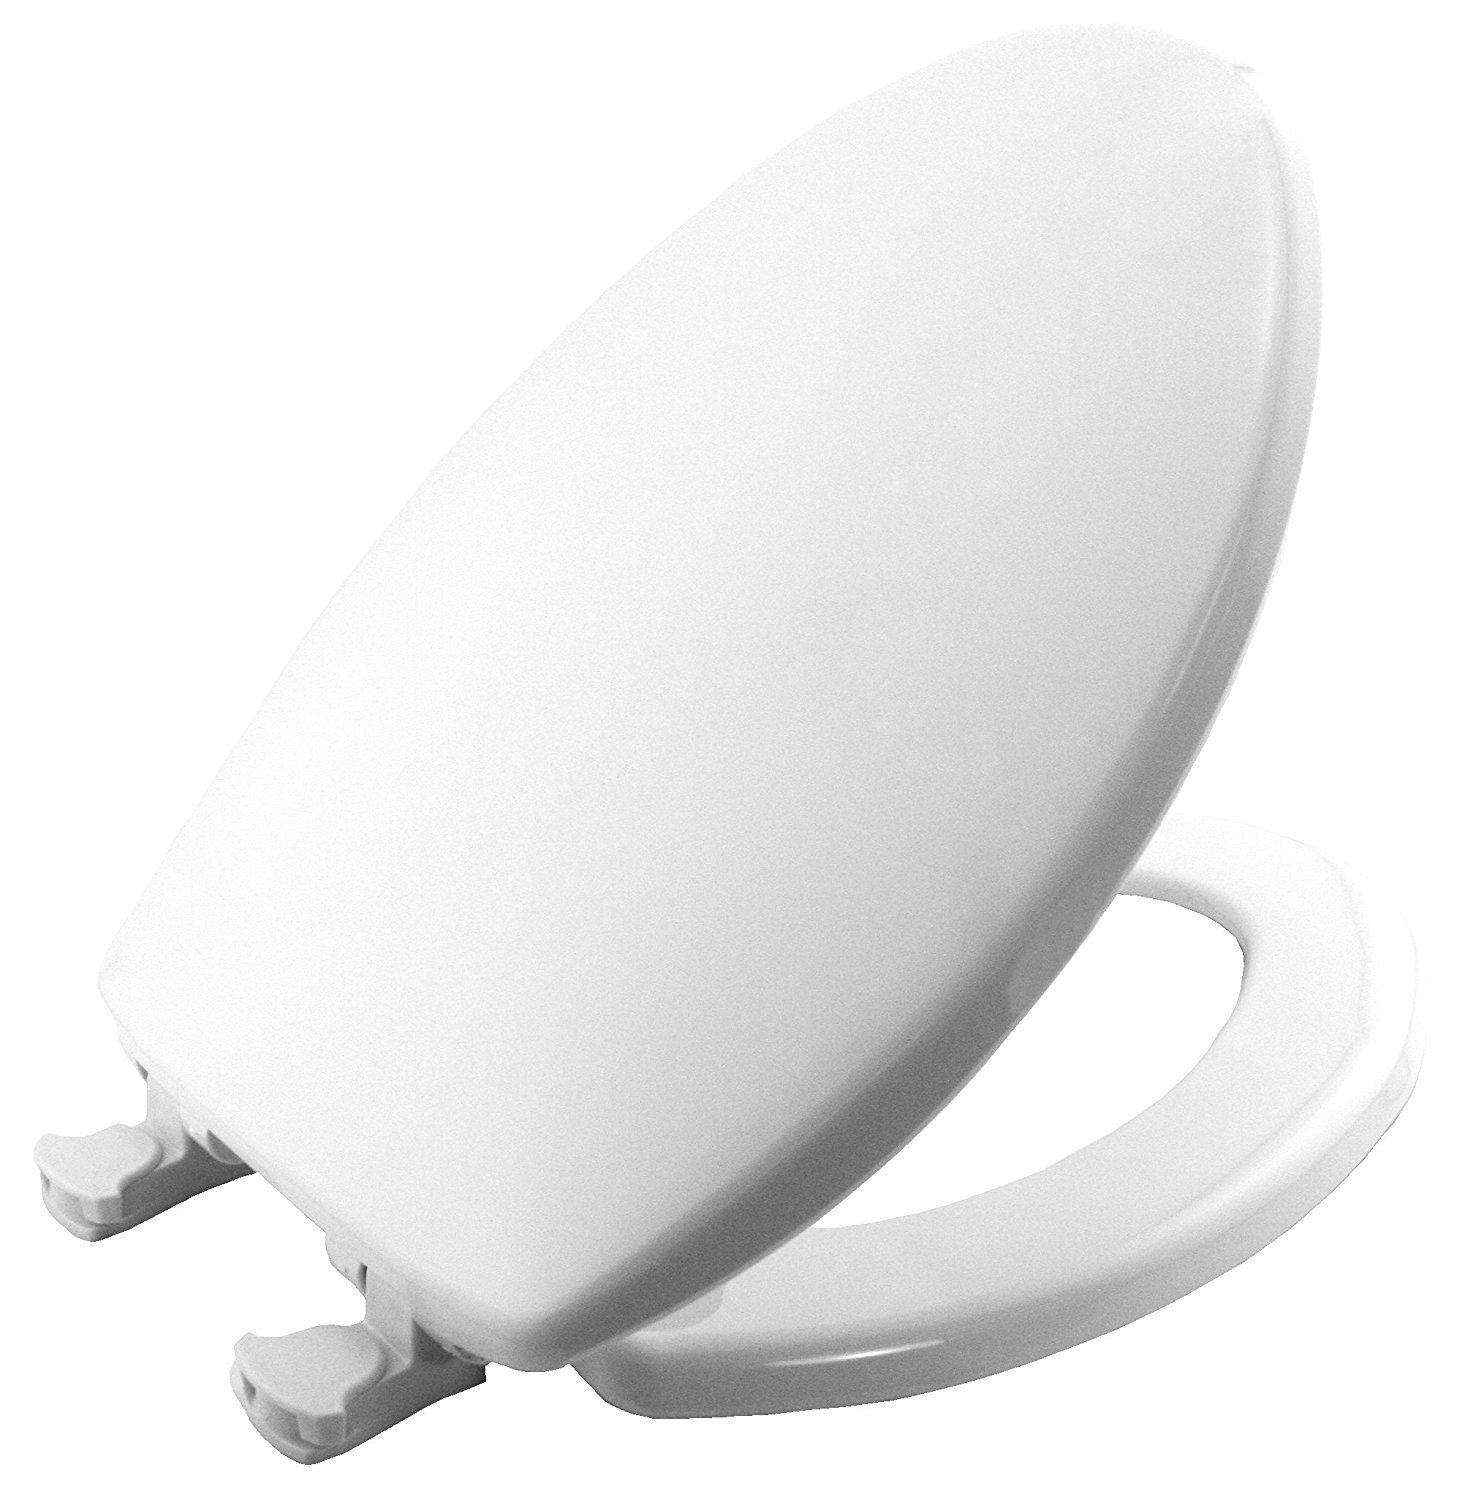 MAYFAIR 180EC 000 Toilet Seat will Never Loosen and Easily Remove, ELONGATED, Long Lasting Plastic, White